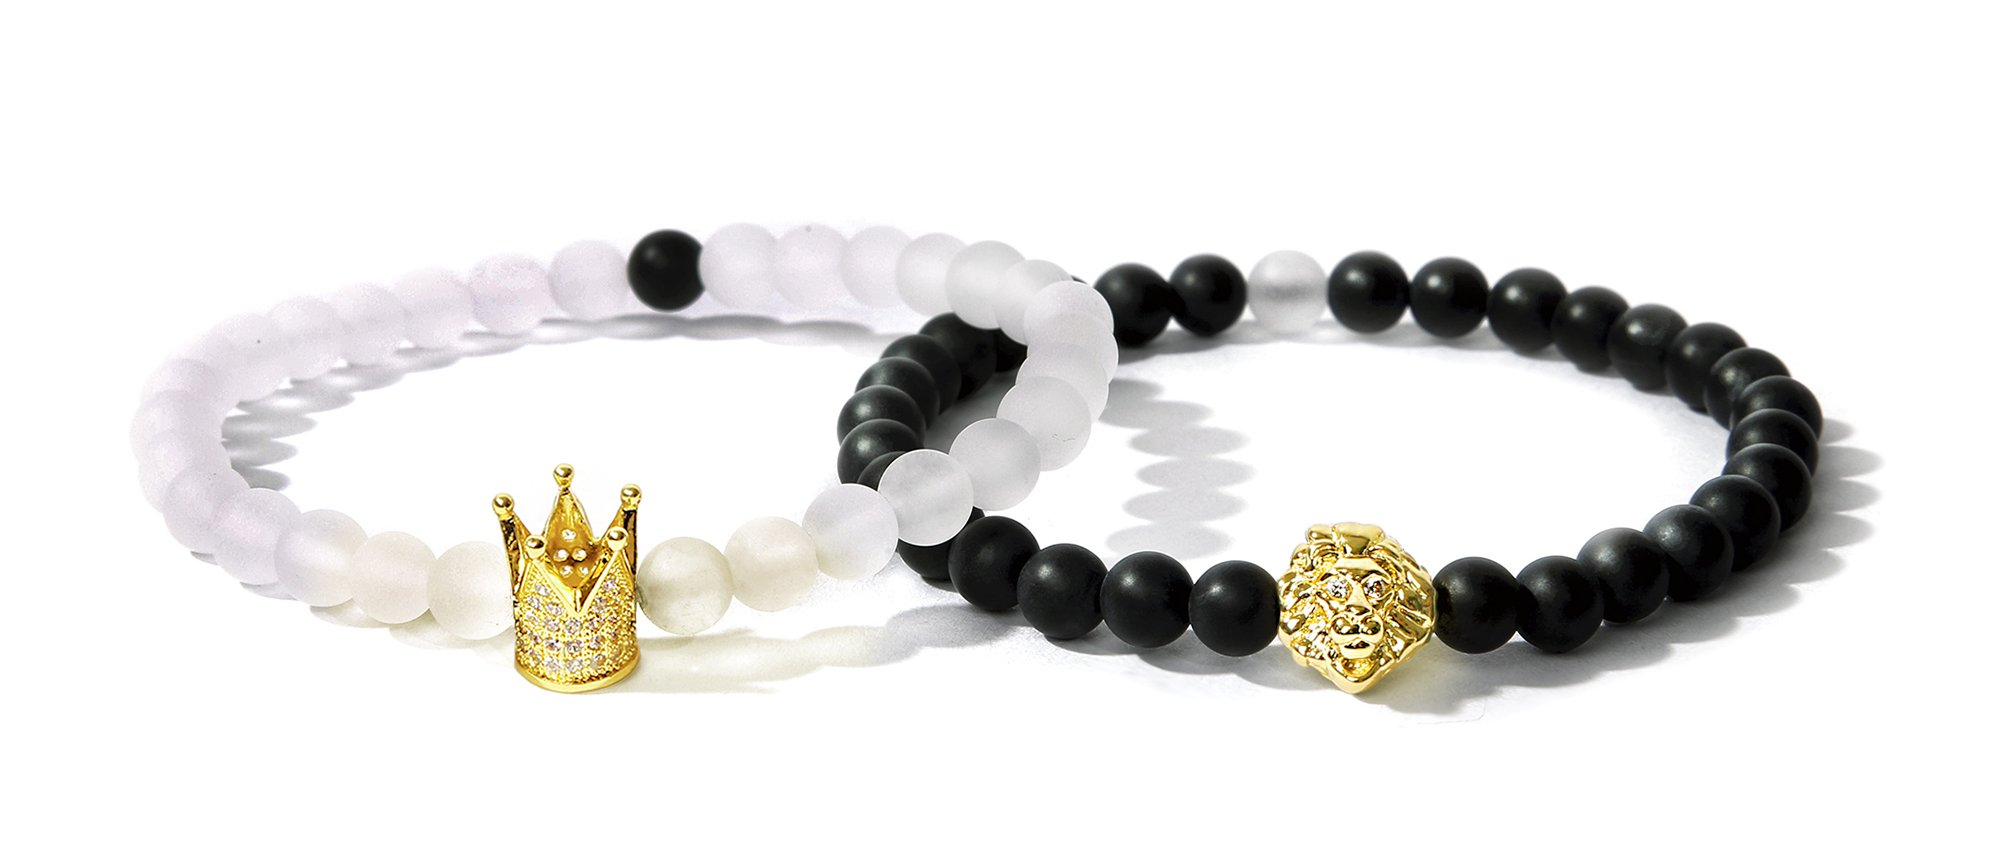 Bella.Vida Women Mens Bracelet 6mm Natural Healing Matte White Crystal and Black Onyx Bead Elastic Double Bracelet With Crown and Lion(Avatar of King)